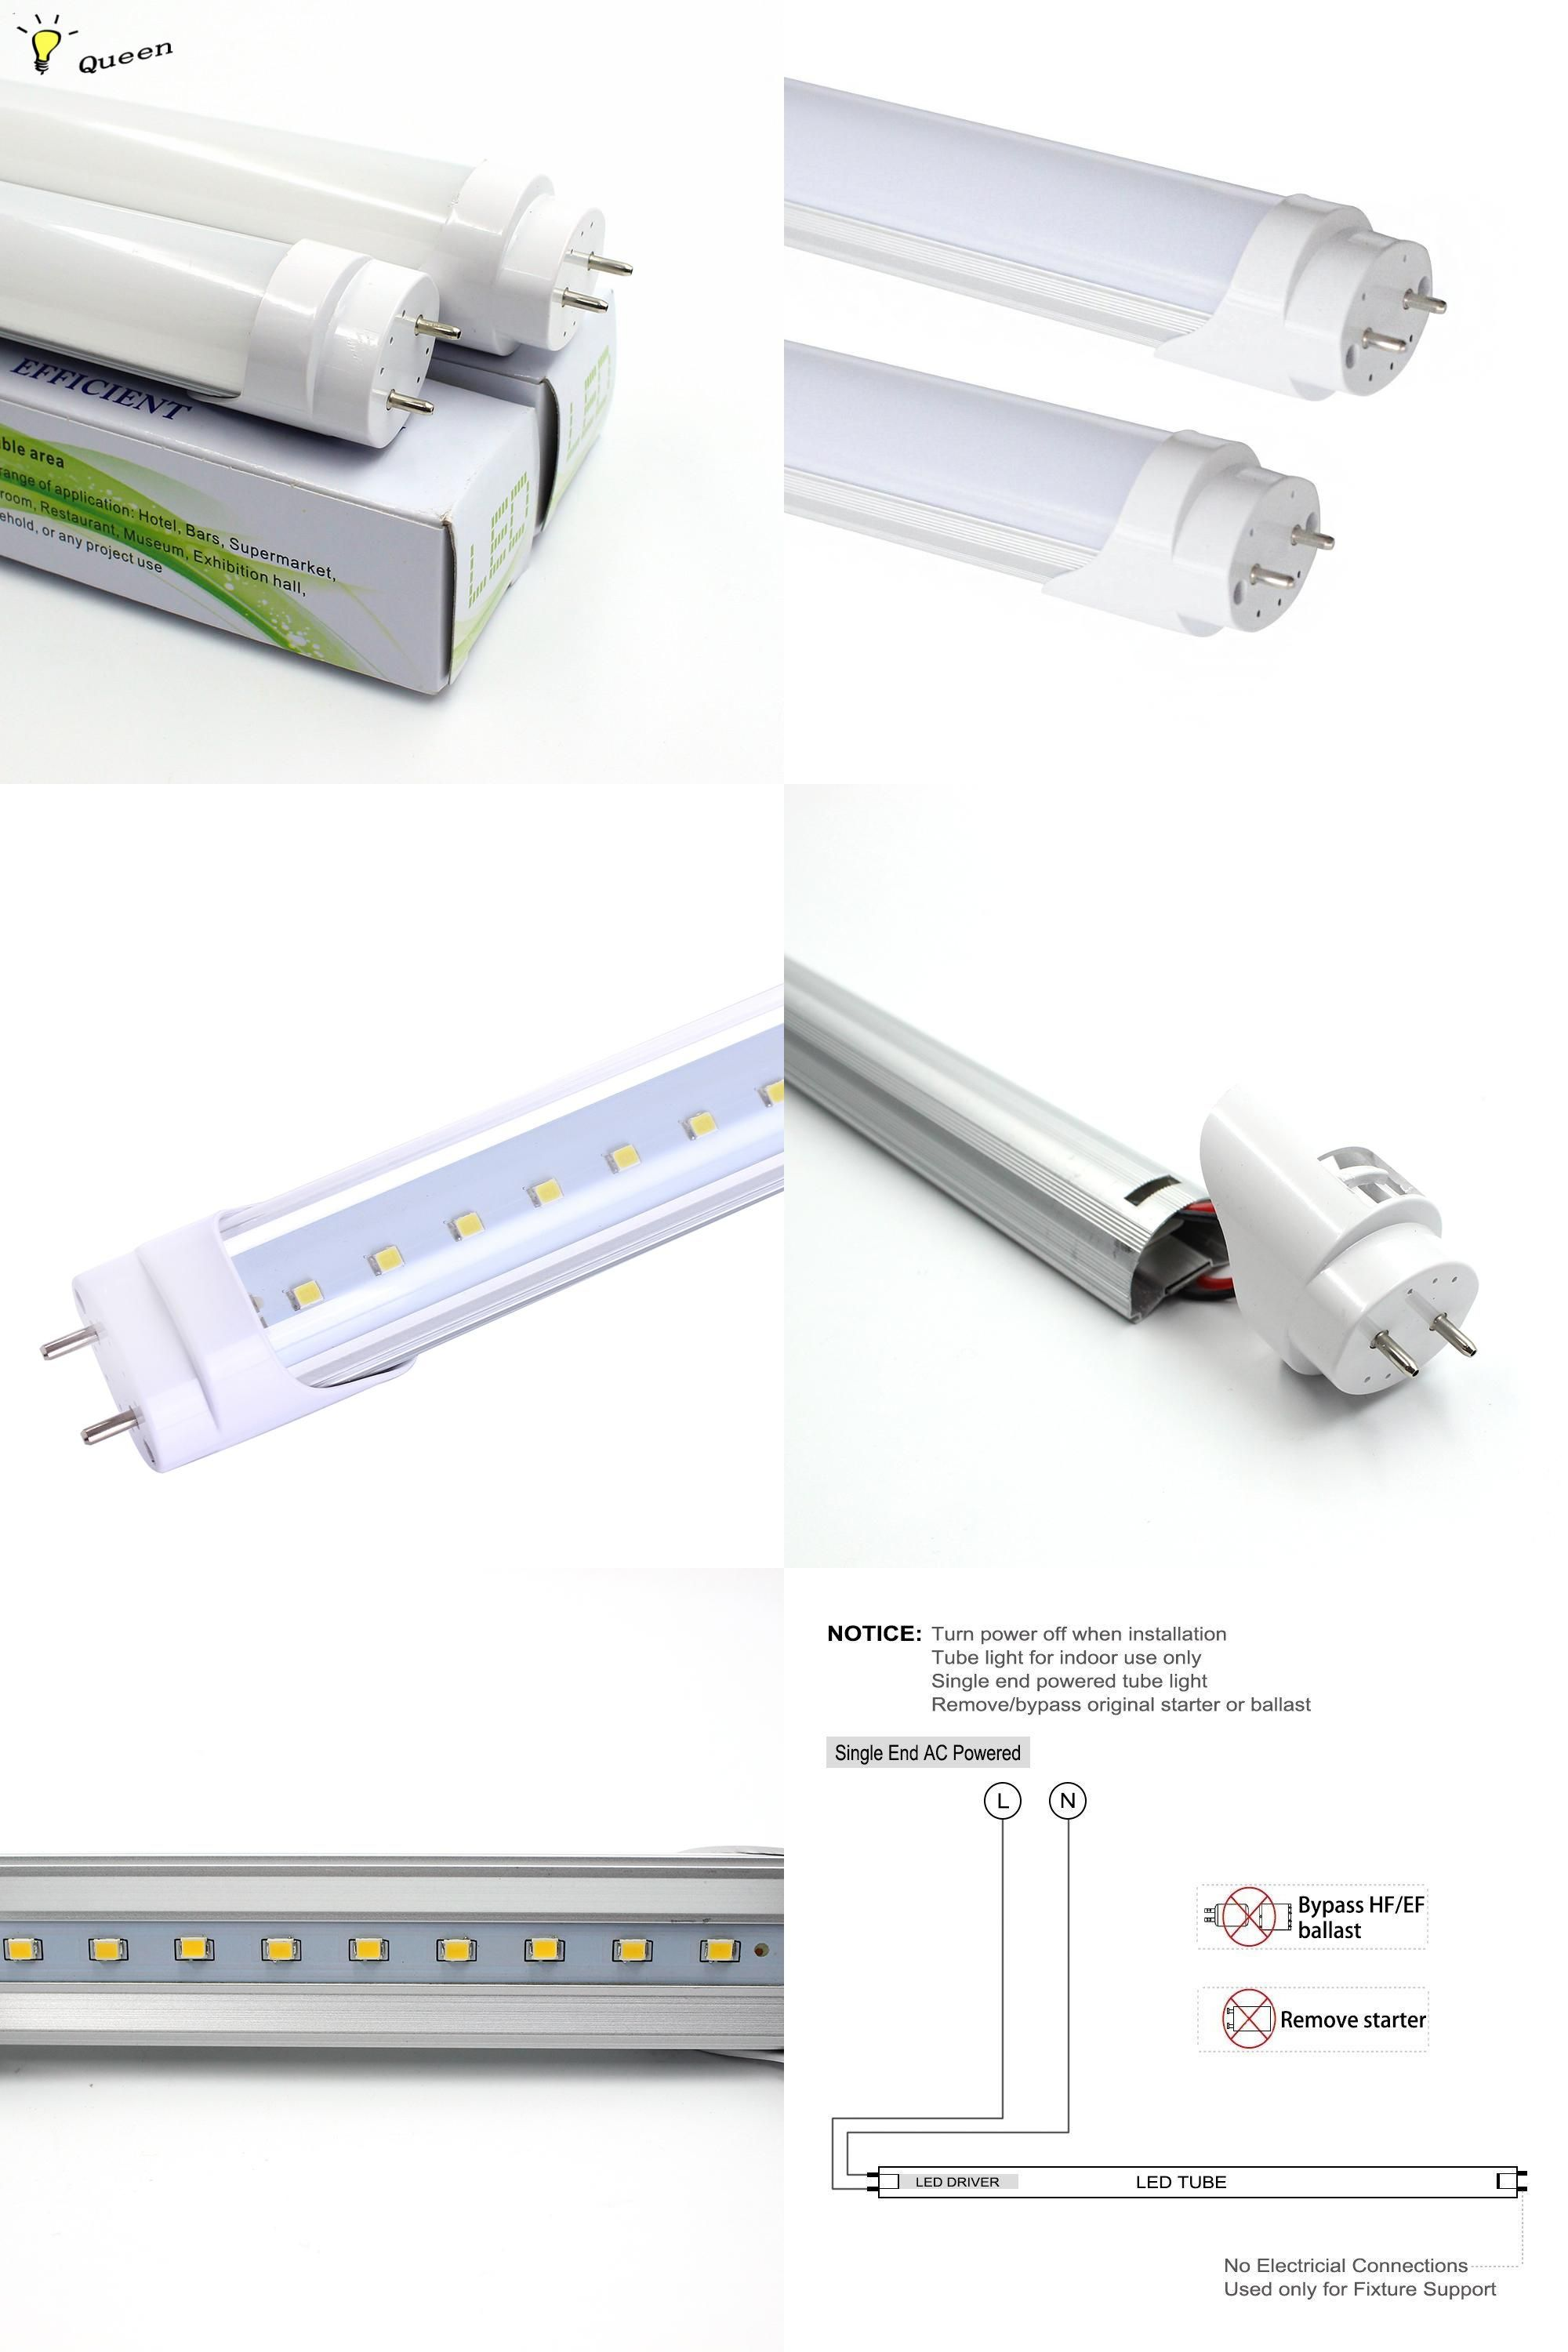 Visit To Buy Led Tube Light Bulb T8 Led Tubete 600mm Smd 2835 10w Wall Lamps 110v 220v Cold Warm White Lampada Luz Led Light Led Tube Light Tube Light T8 Led